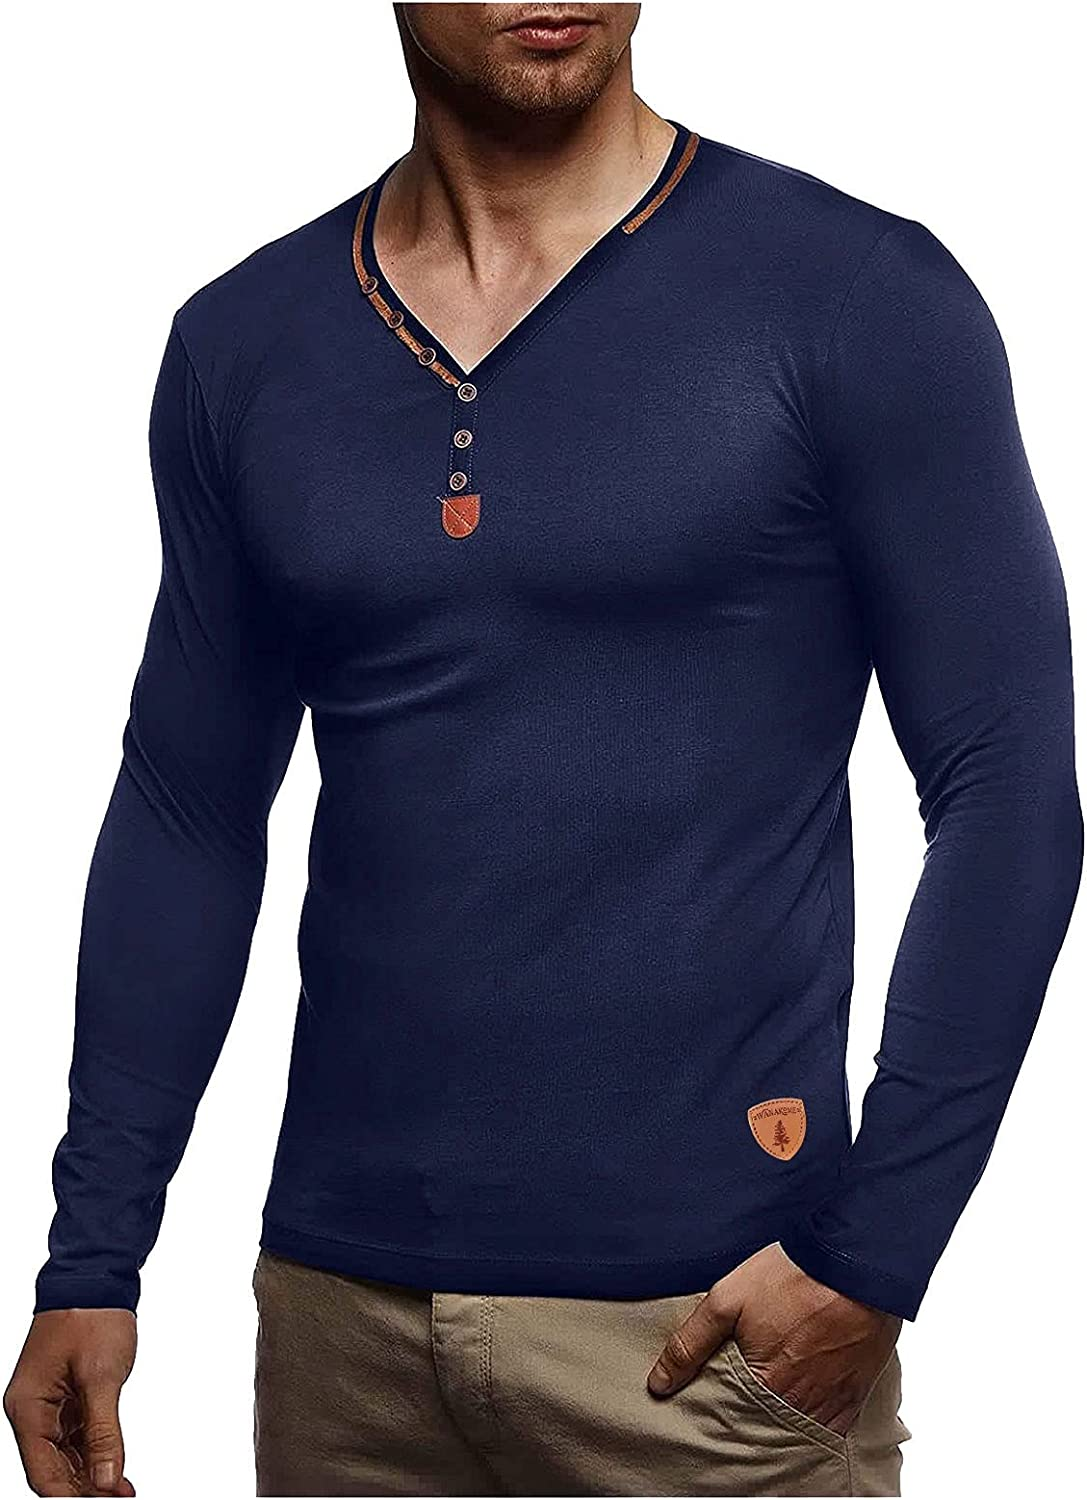 Divinal Shirt for OFFicial Men Long Sleeve Multi Autumn Casual and gift Winter